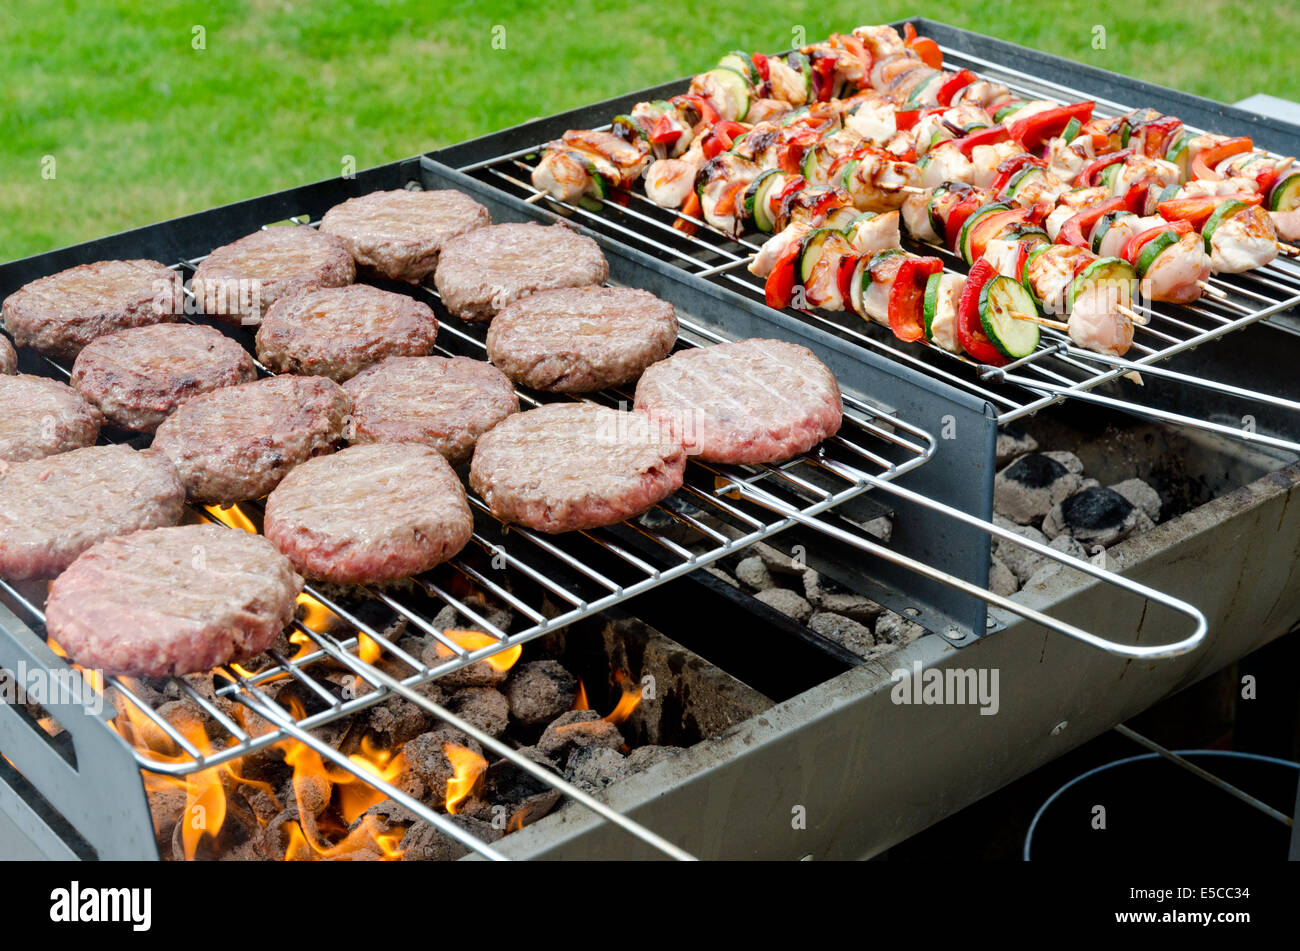 Charcoal Barbecue Bbq Loaded With Chicken Kebabs And Beef Burgers Stock Photo Alamy